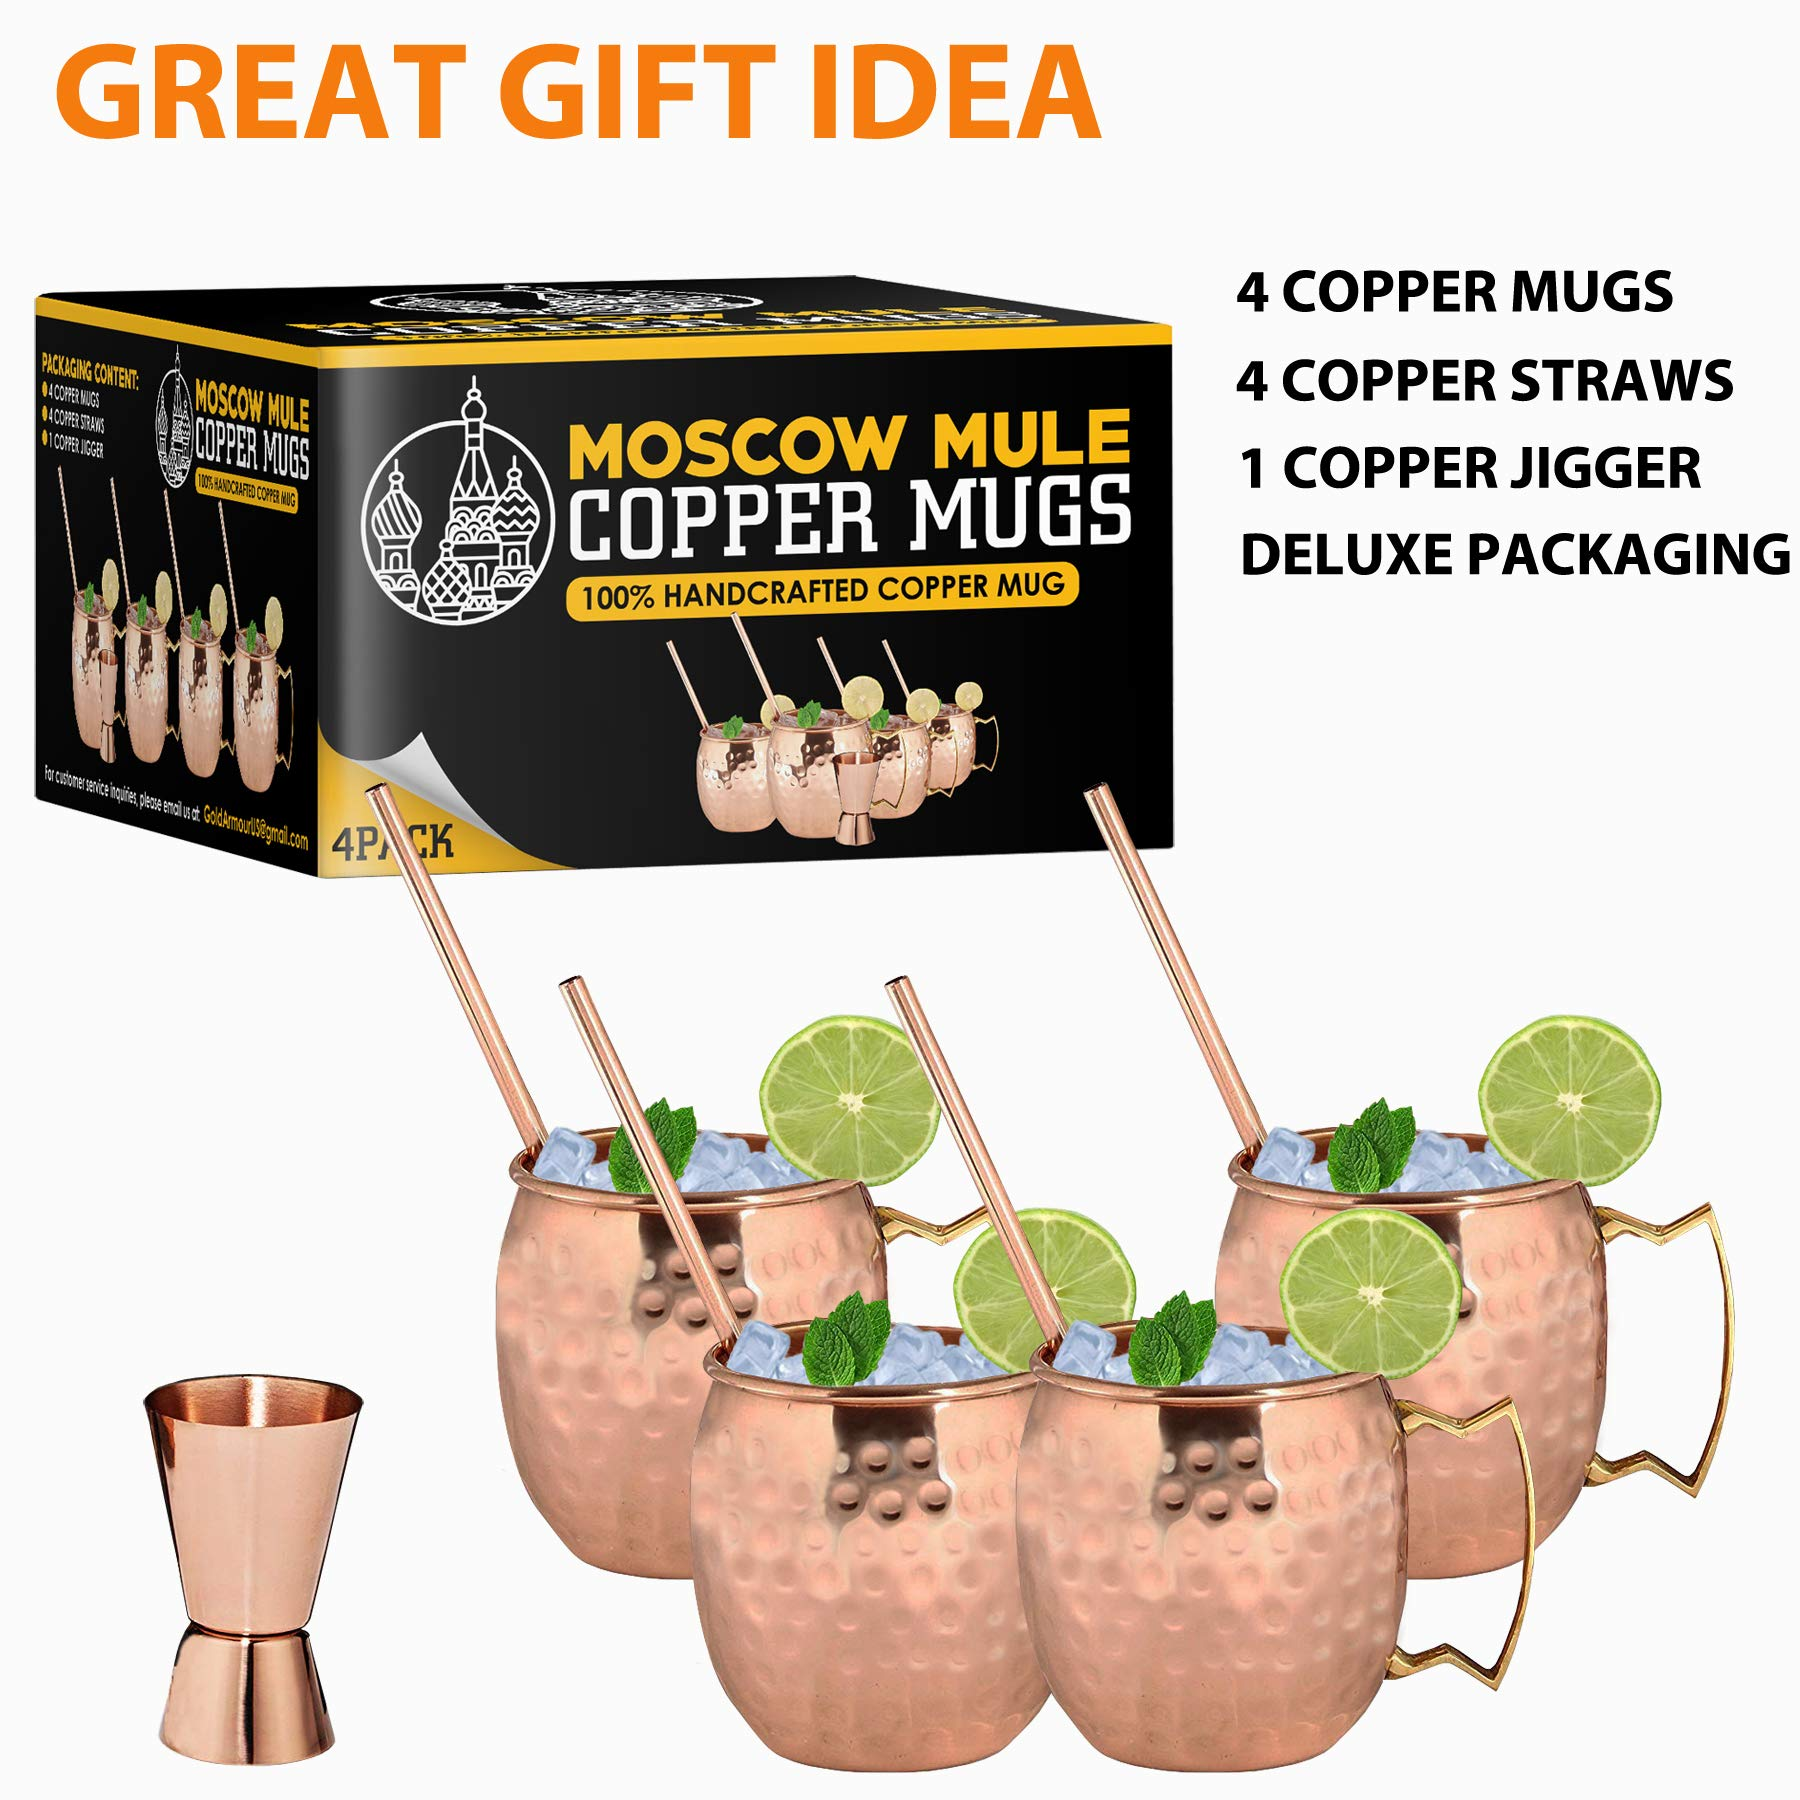 Moscow Mule Copper Mugs - Set of 4-100% HANDCRAFTED - Food Safe Pure Solid Copper Mugs - 16 oz Gift Set with BONUS: Highest Quality Cocktail Copper Straws and Jigger! (Copper) by Gold Armour (Image #6)